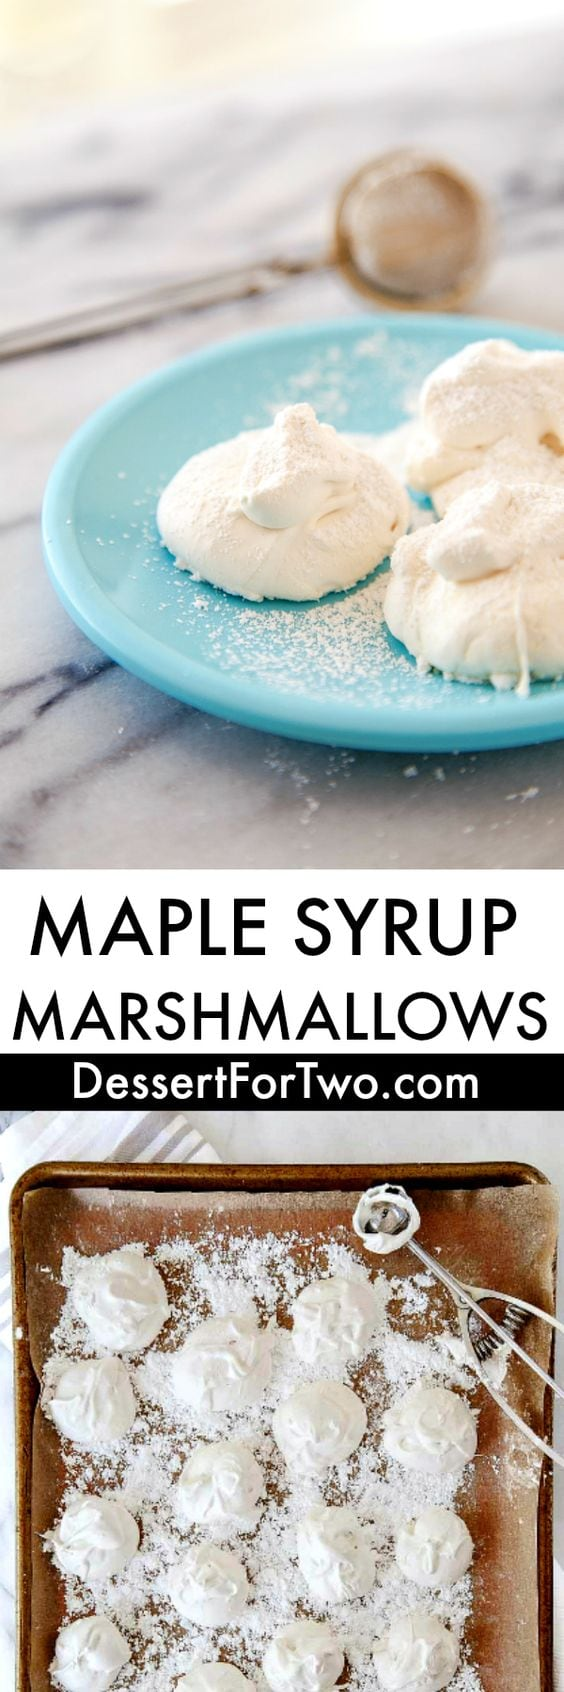 Homemade marshmallows without corn syrup. Use maple syrup to make marshmallows from scratch that you'll feel better about serving your kids. Naturally sweetened marshmallows are made for a mug of hot cocoa or as marshmallow decorations on a cake. Easy homemade recipe for marshmallows from scratch. #marshmallows #naturallysweetened #maplesyrup #homemademarshmallows #nocornsyrup